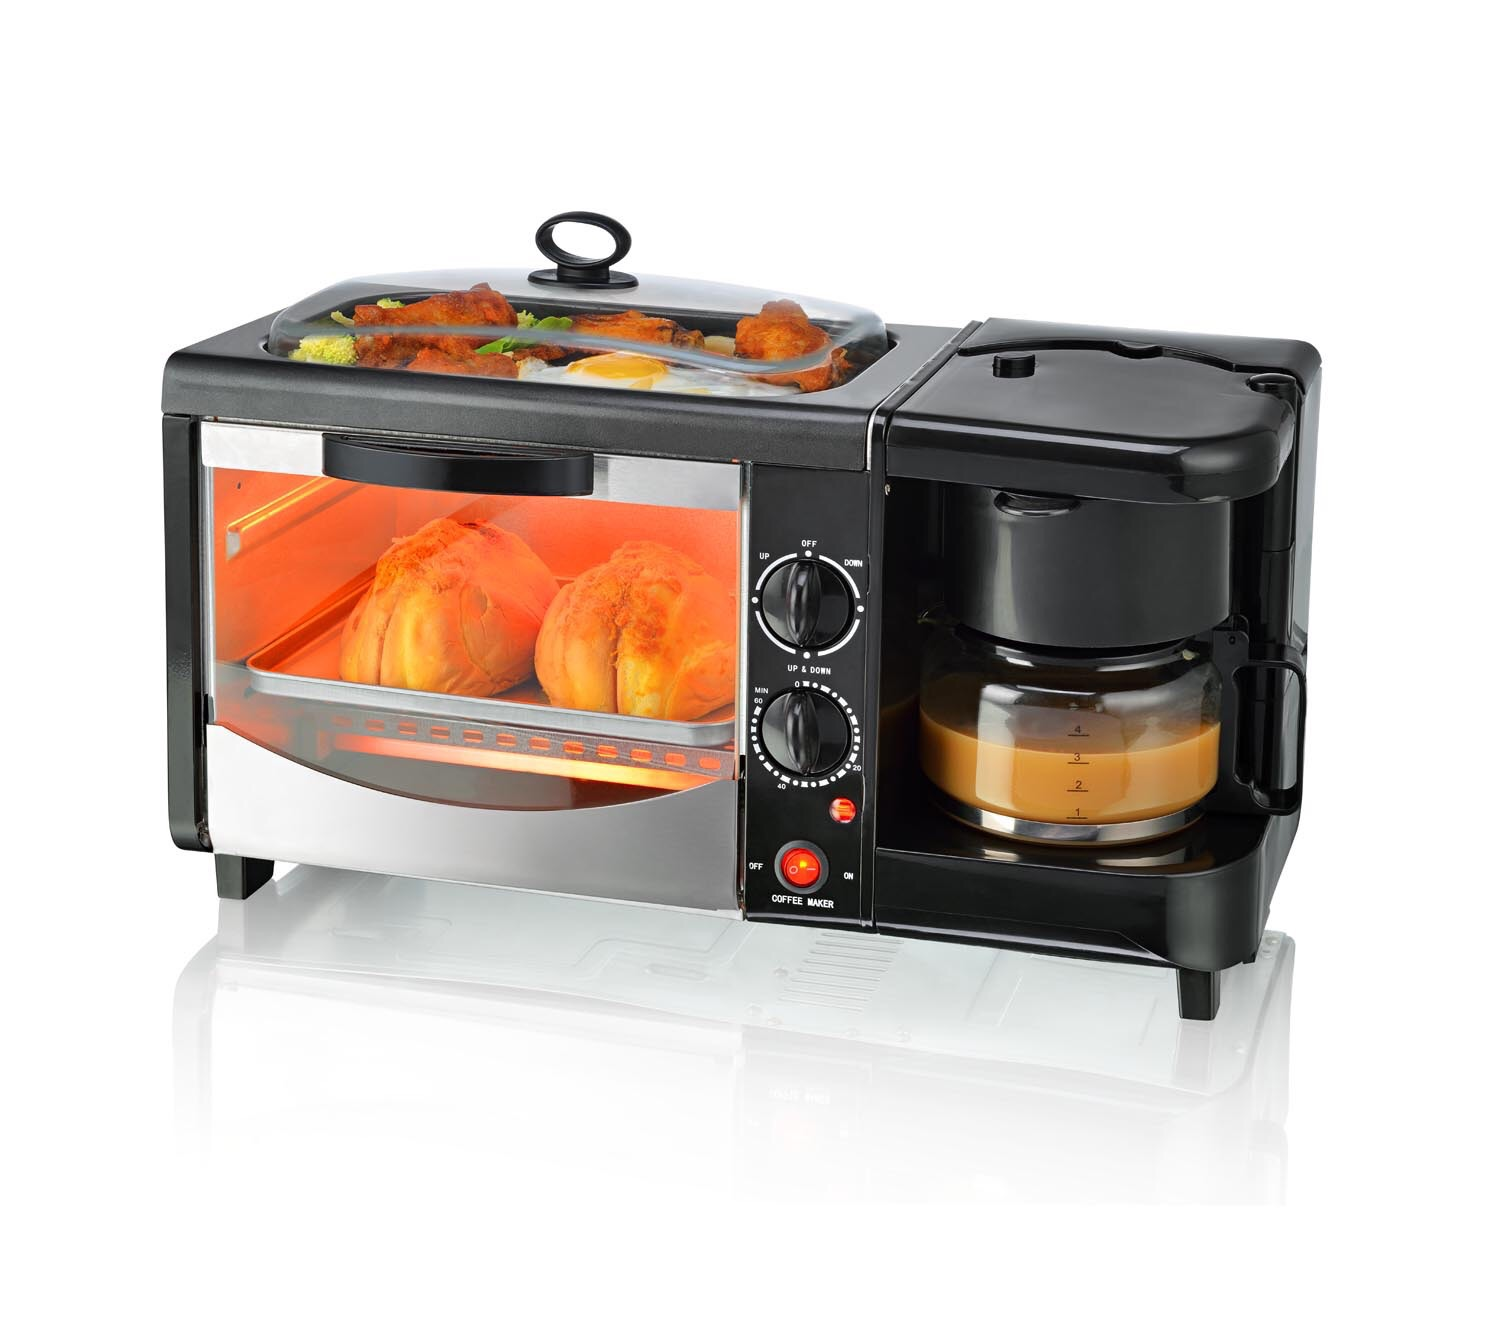 Uncategorized 3 In 1 Kitchen Appliances 3 in 1 breakfast makerelectric oven products www newstarnet cn kitchen appliance maker